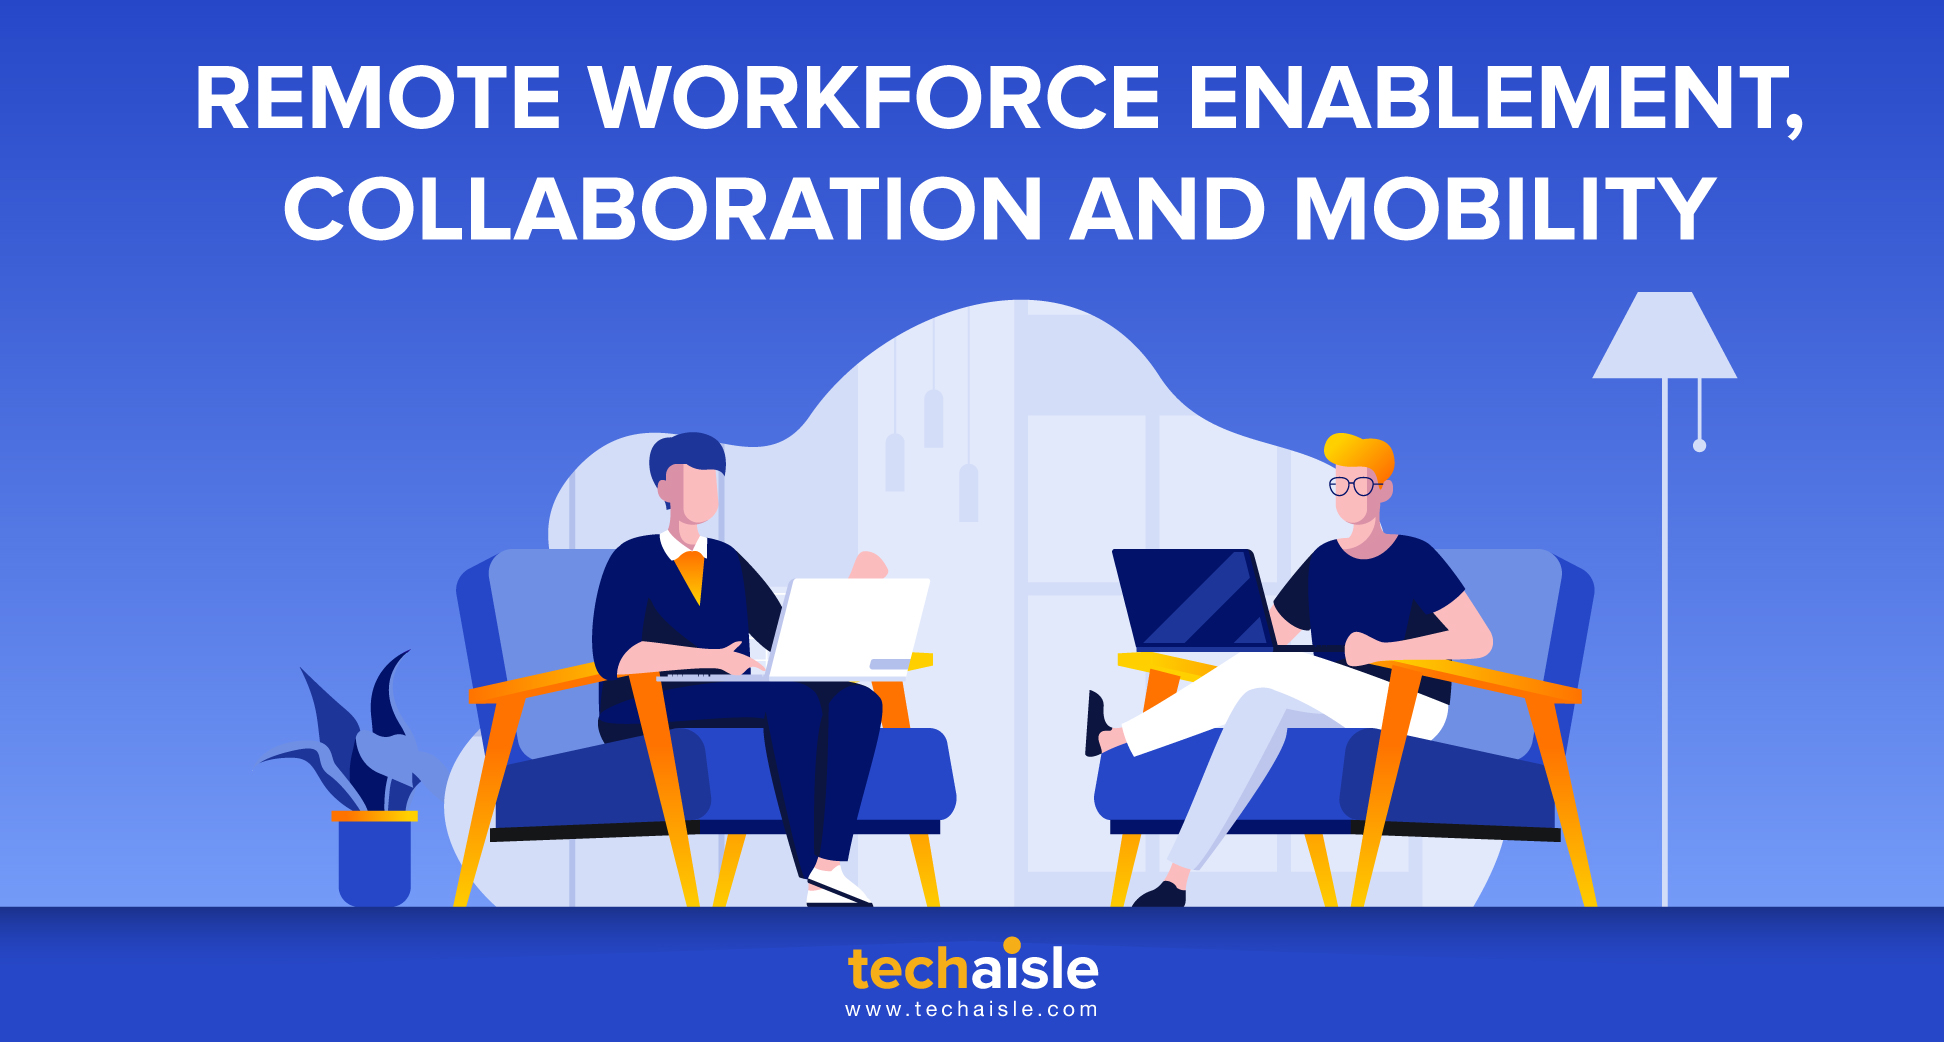 techaisle remote workforce enablement